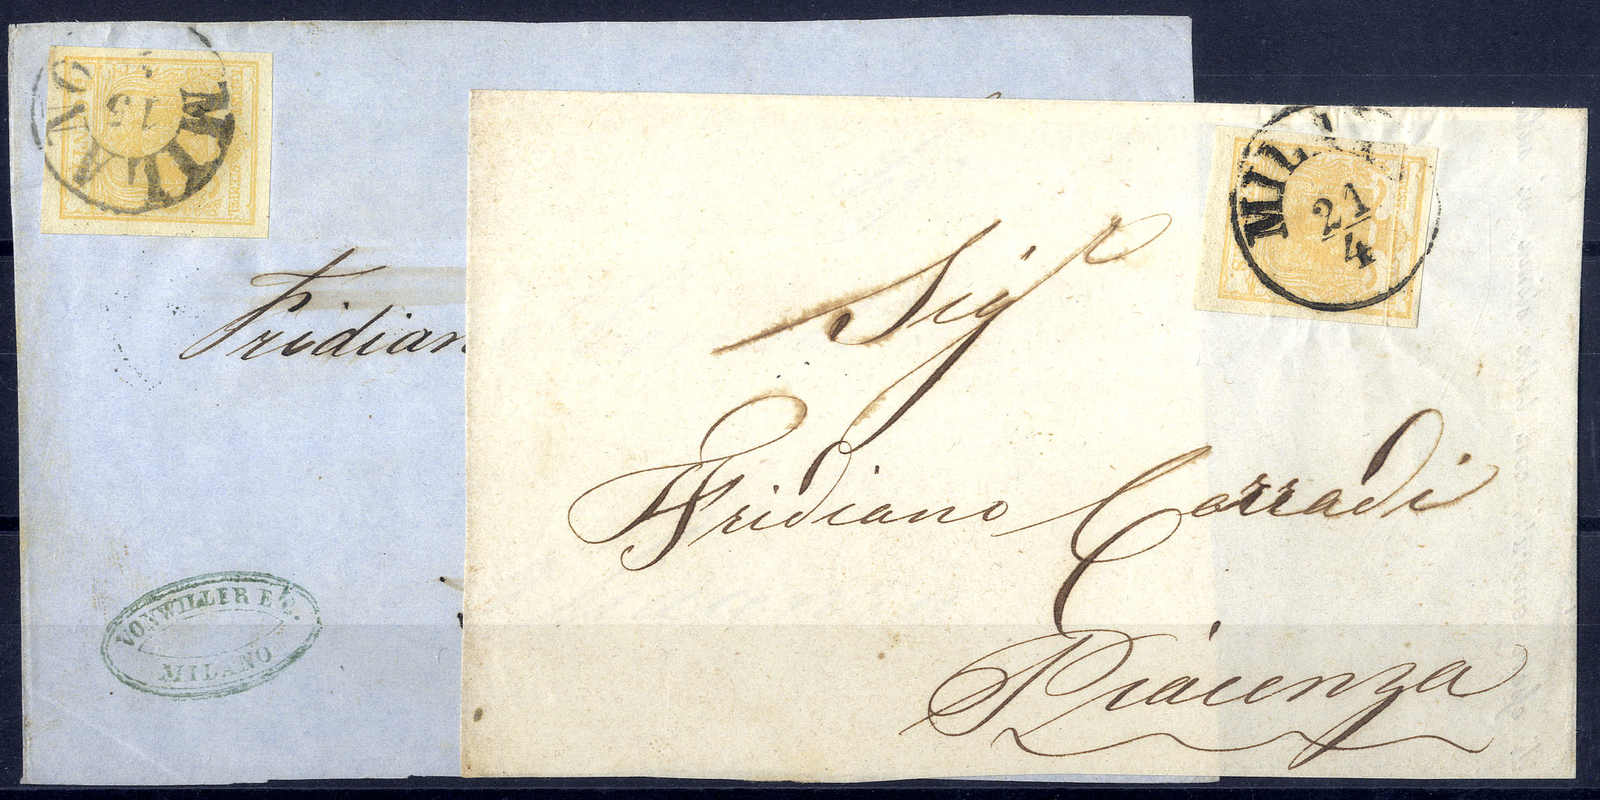 Lot 1628 - europe lombardy venetia -  Viennafil Auktionen Auction #66 Worldwide Mail Auction: Italy, Austria, Germany, Europe and Overseas